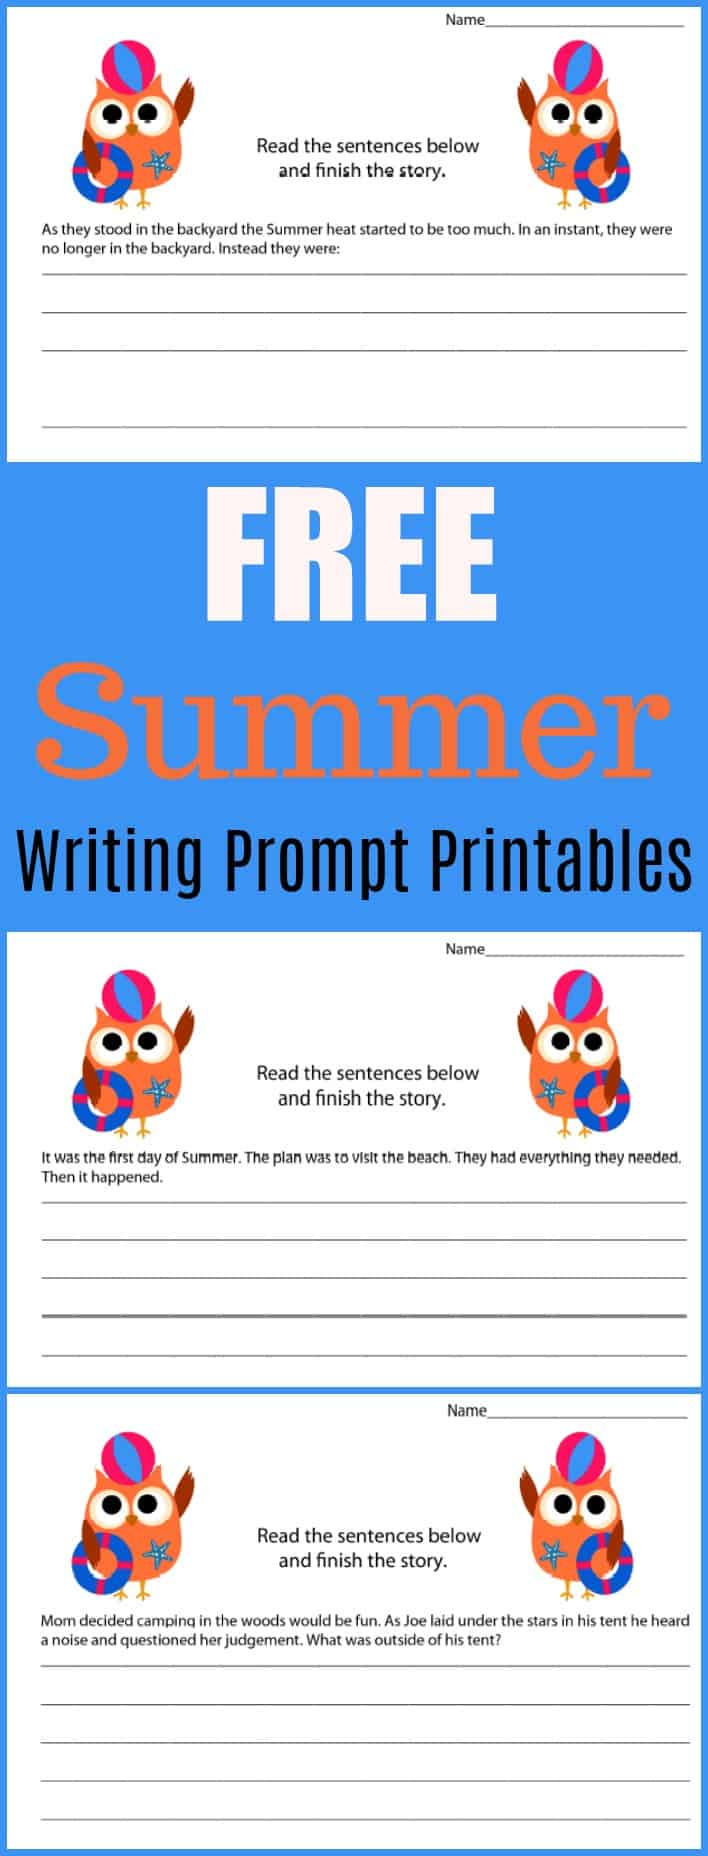 Free Summer Writing Prompt Printable